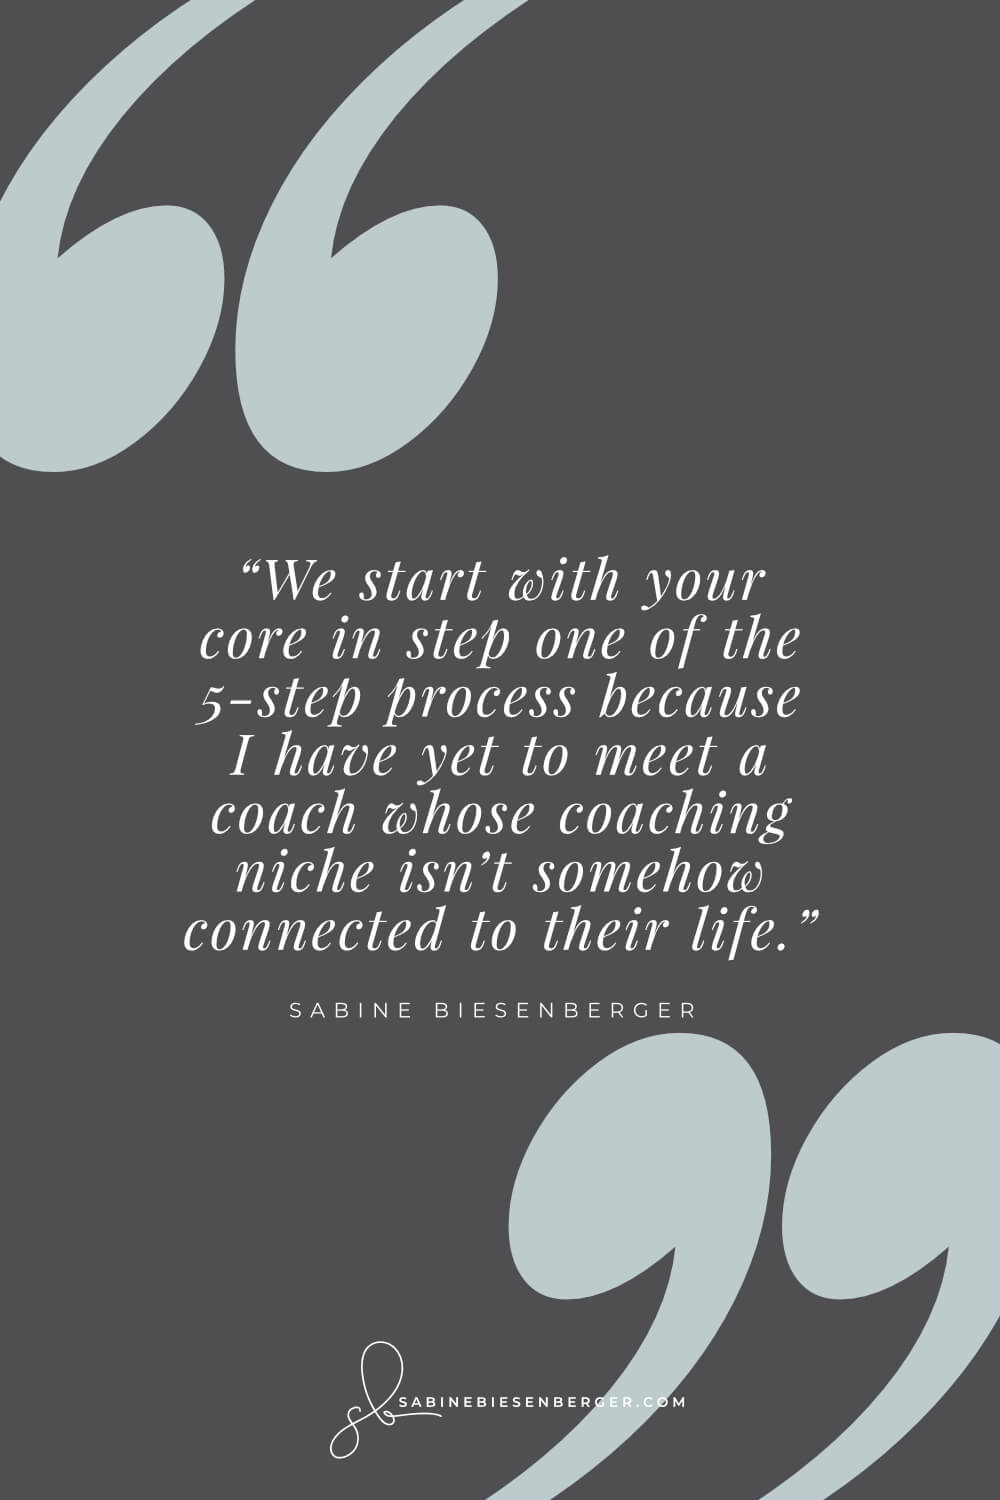 How to find my niche in coaching - Pin Quote - sabinebiesenberger.com